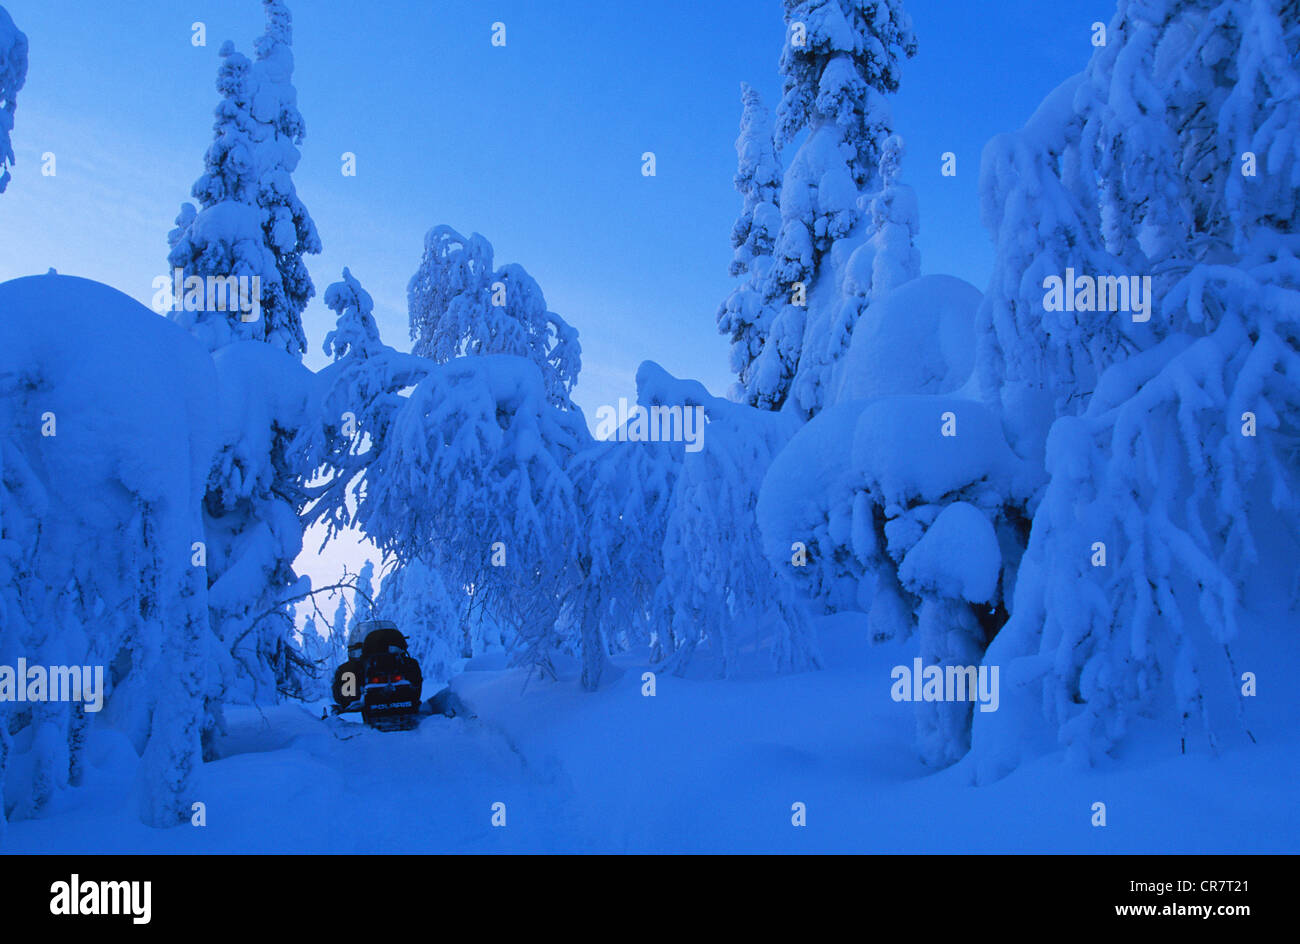 Finland, Lapland Province, Kuusamo, snow motorcycle trip to the Russian border - Stock Image